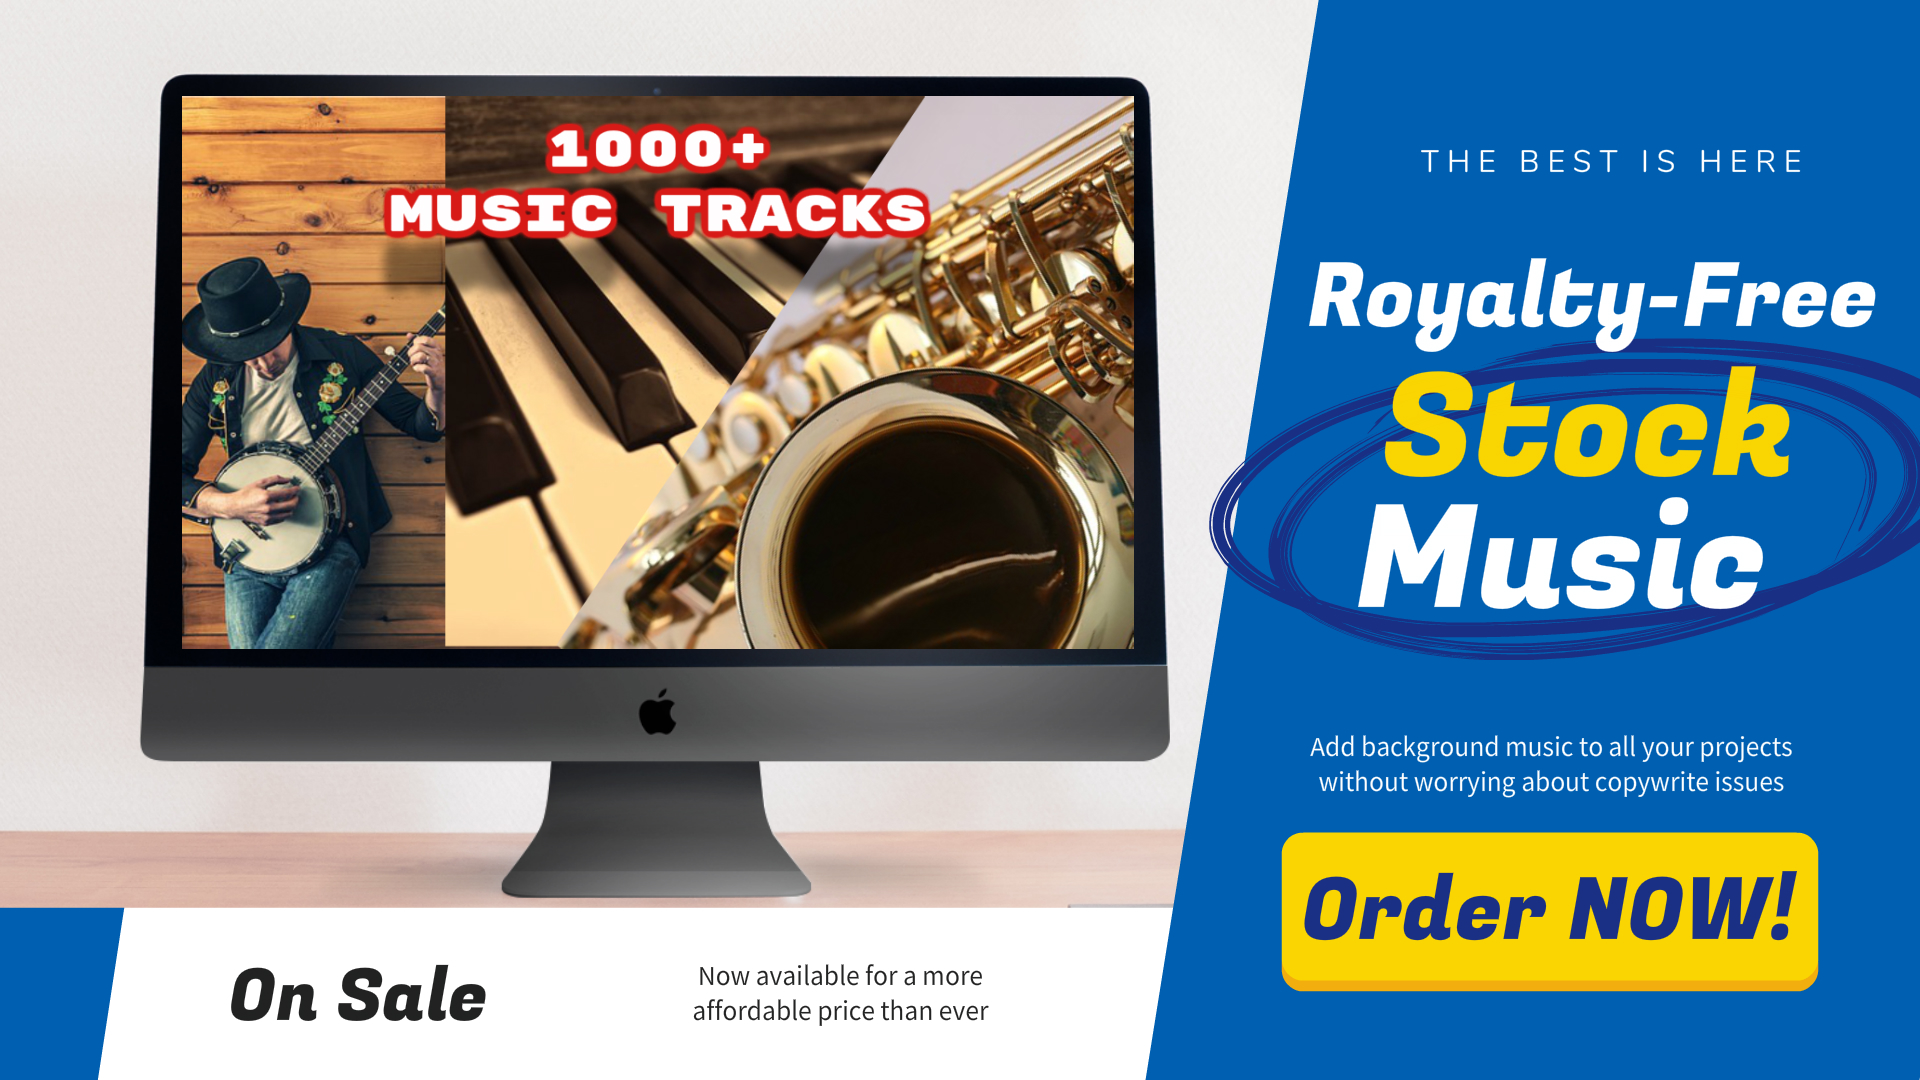 Provide 1000+ Royalty Free Songs